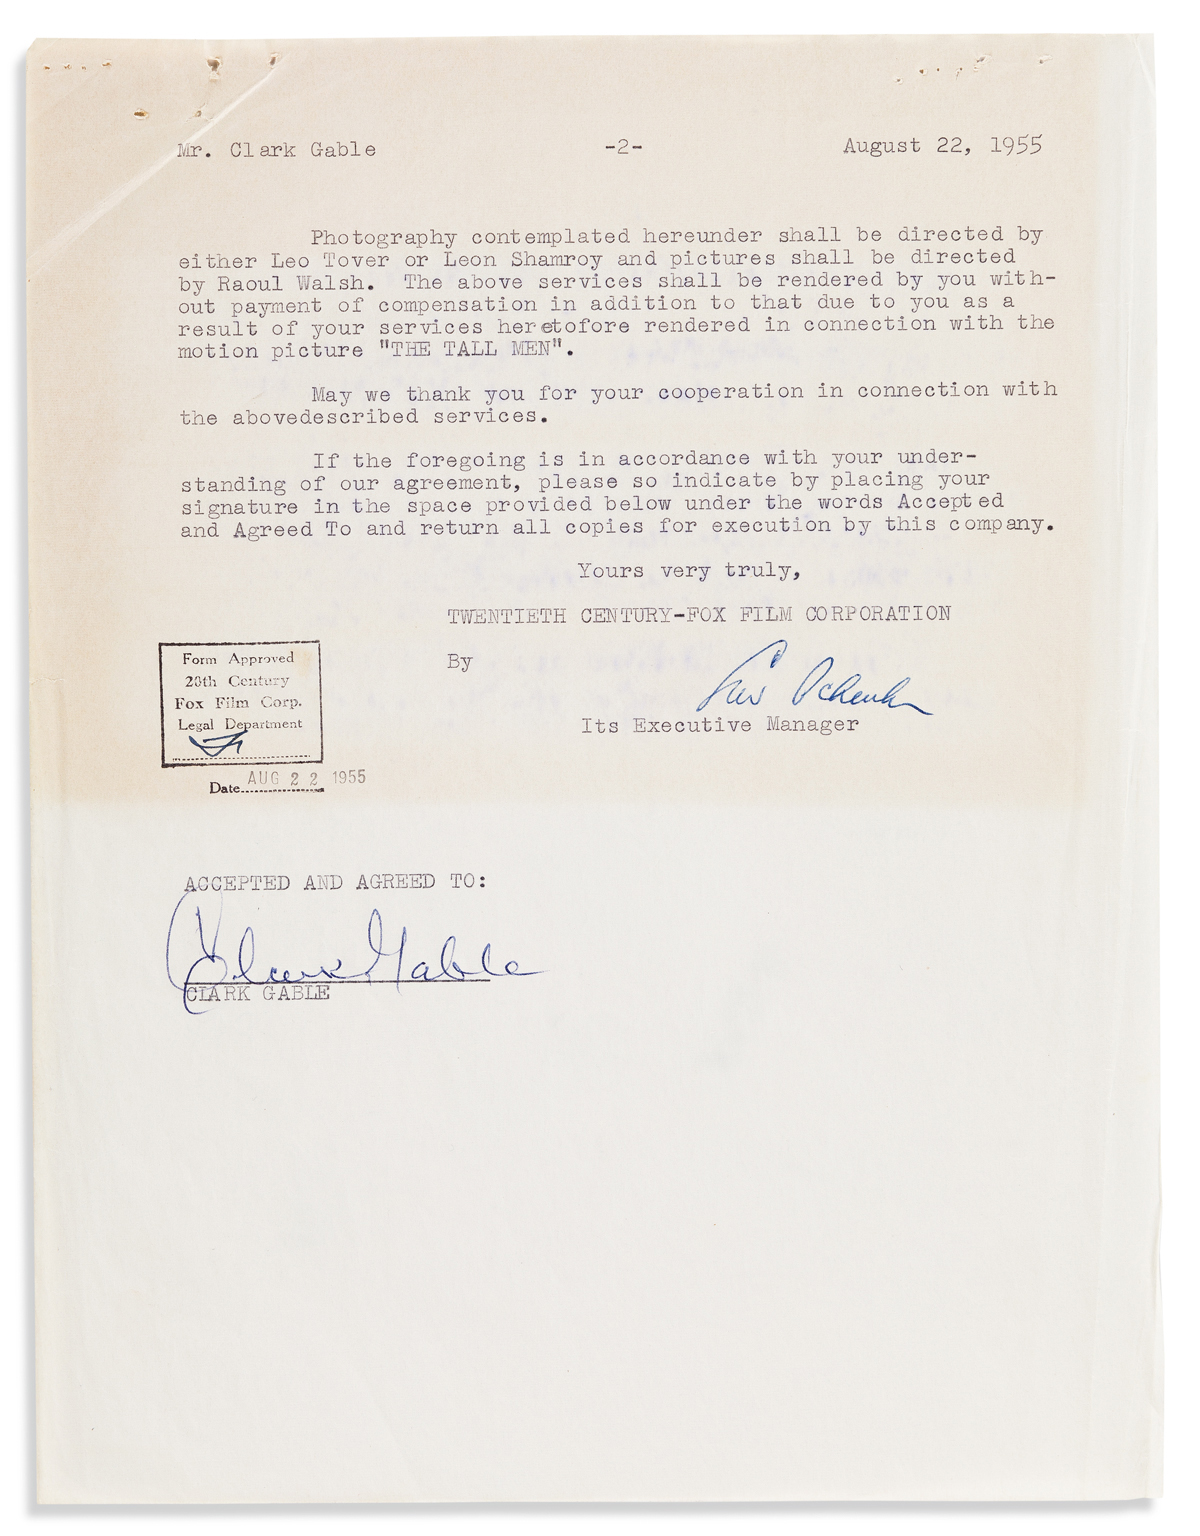 GABLE, CLARK. Typed Document Signed, agreeing to perform in advertisements for the film The Tall Men according to the listed terms.